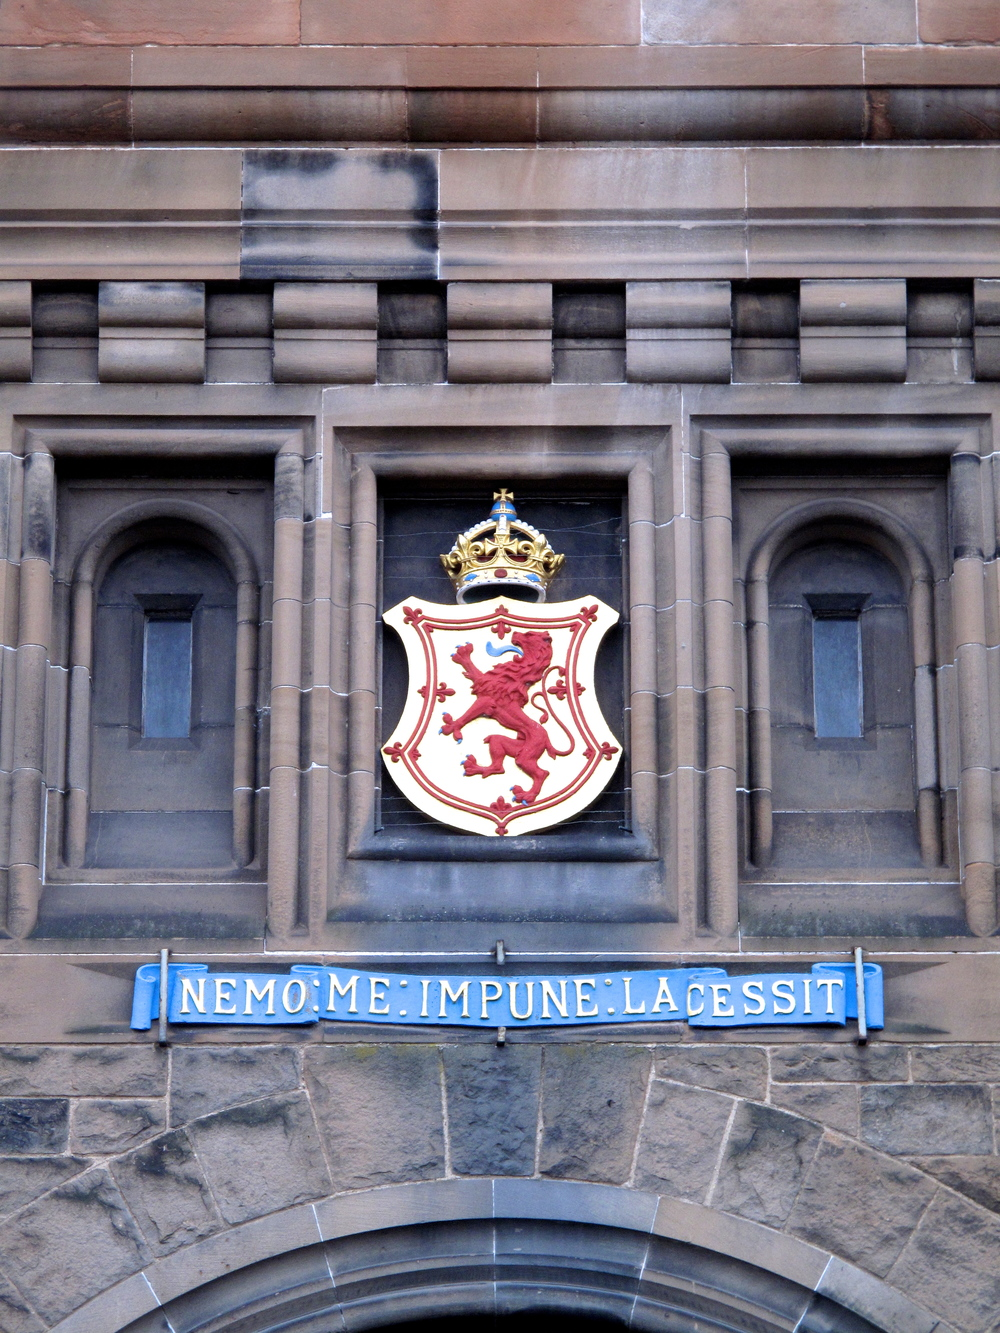 Edinburgh Castle front gate and coat of arms.